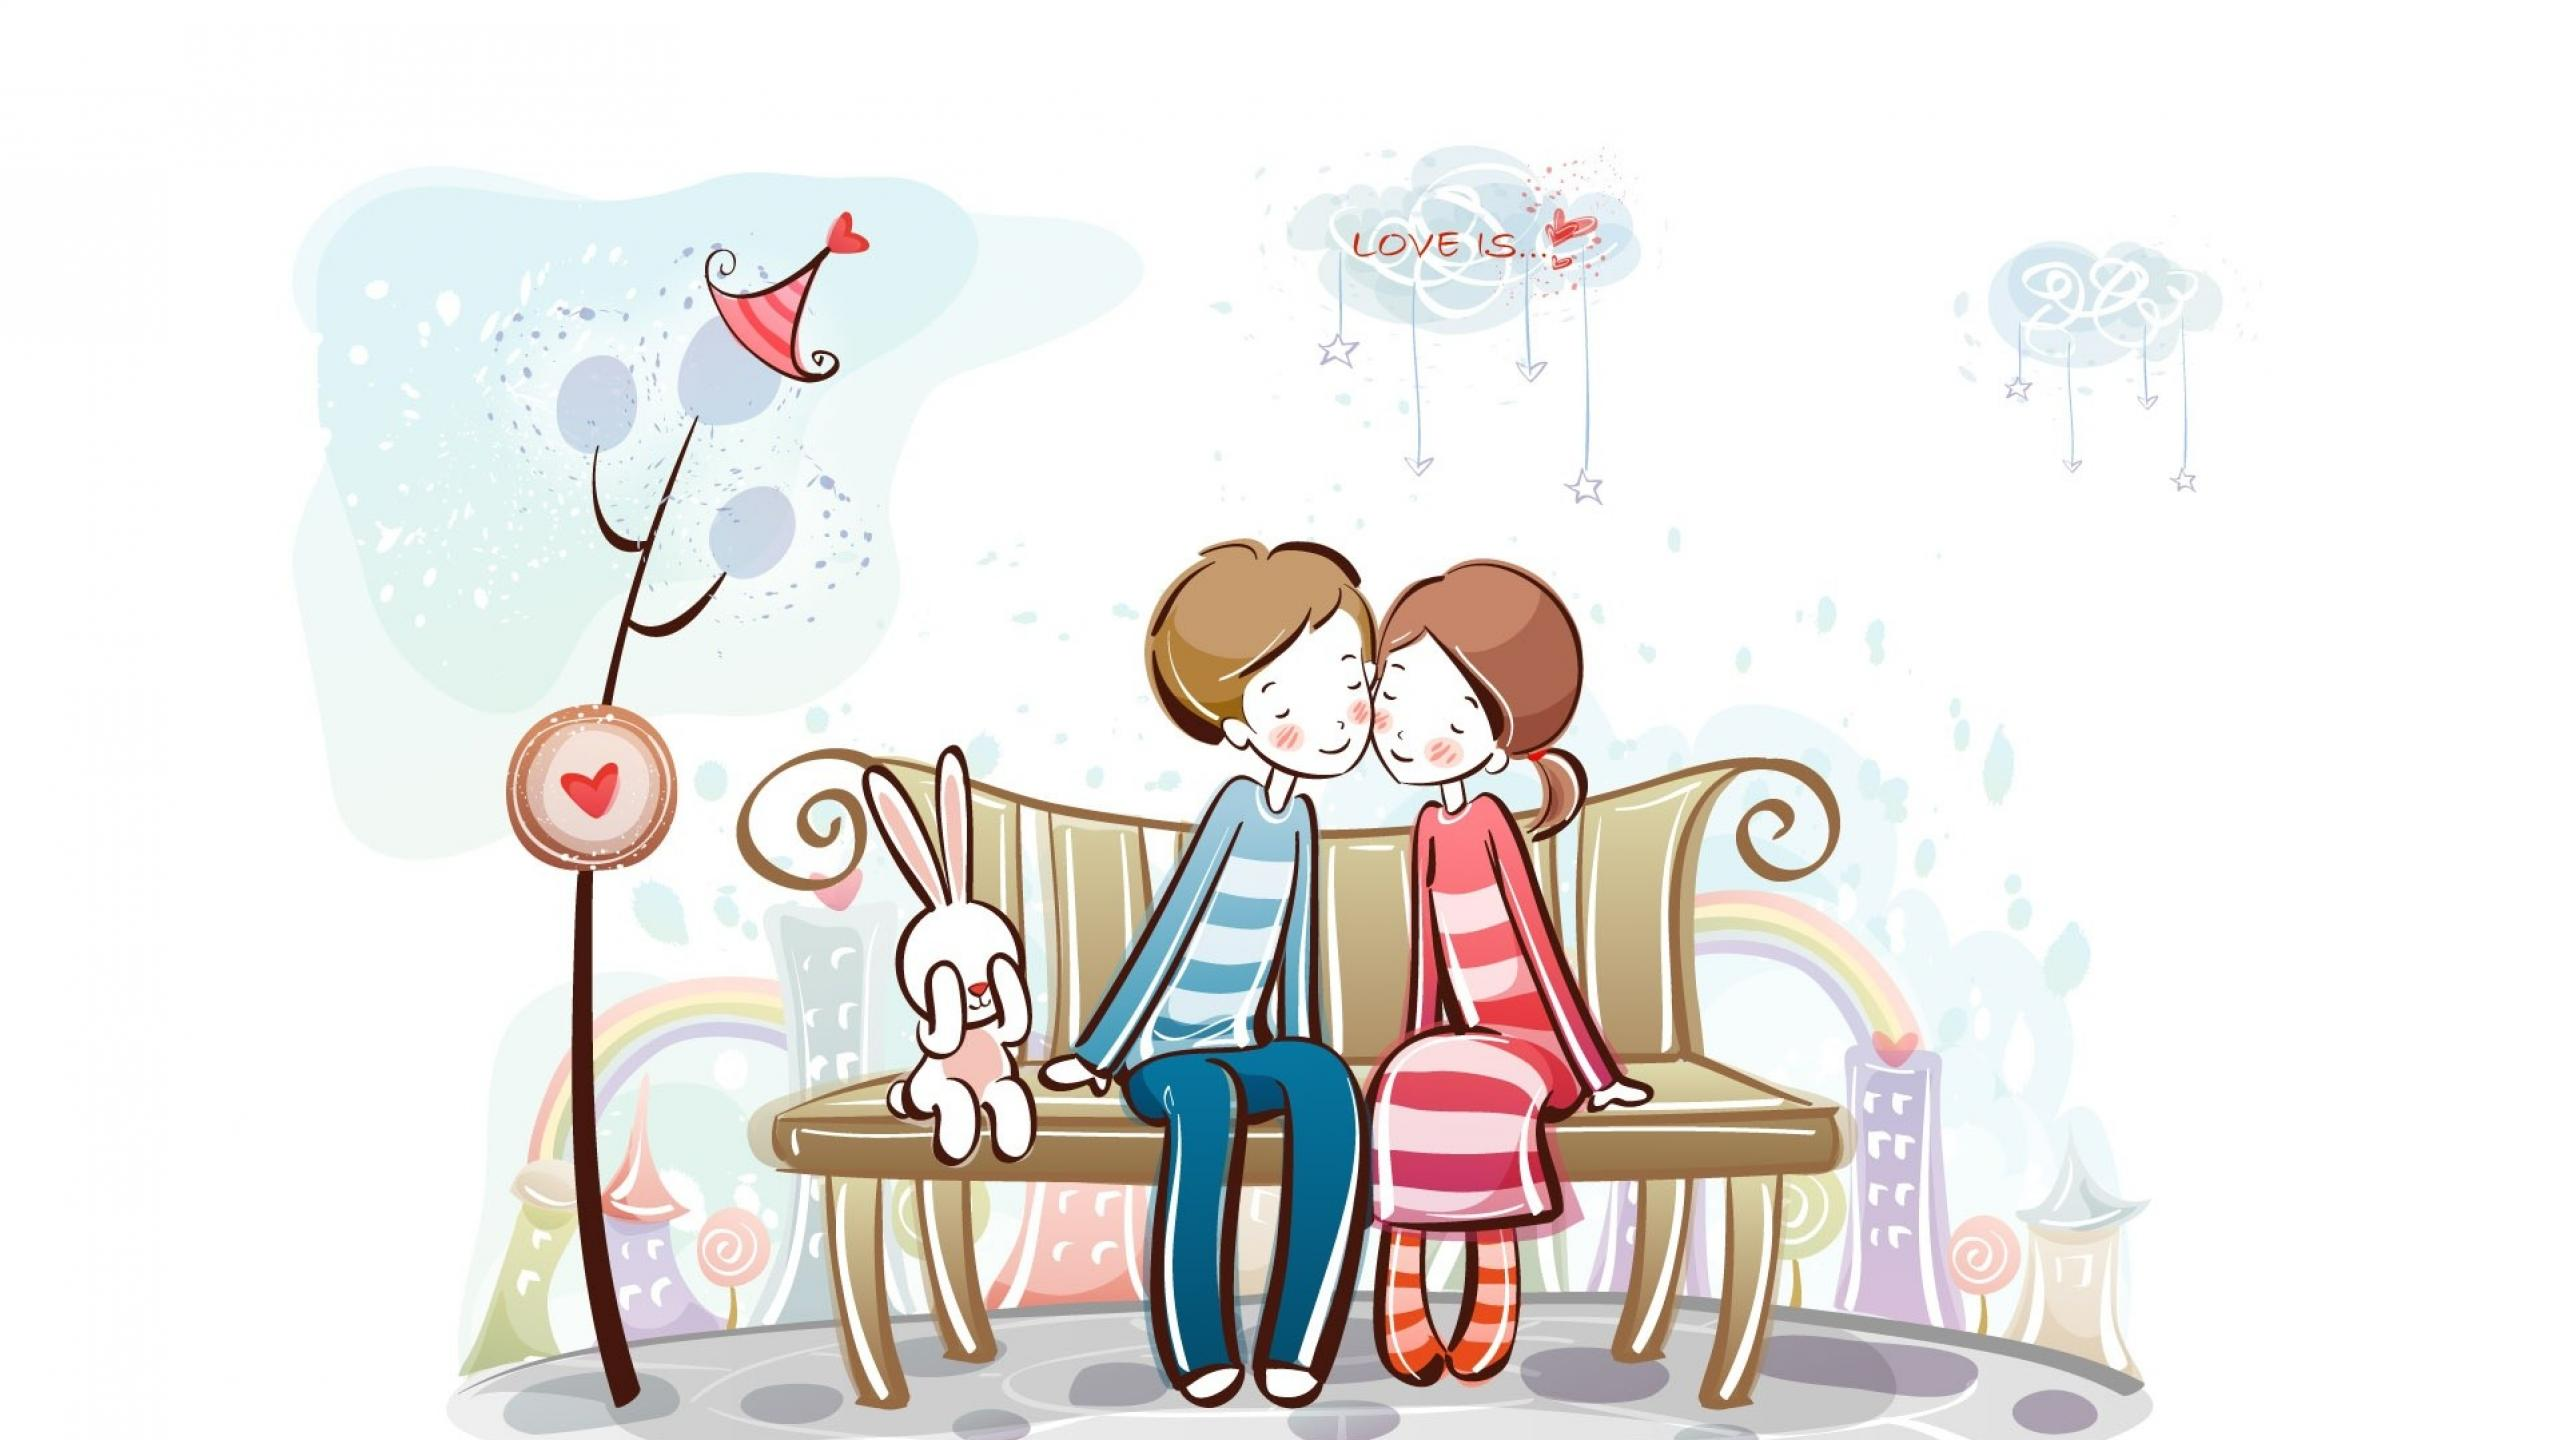 Download Cute Love Images And Wallpaper Download.